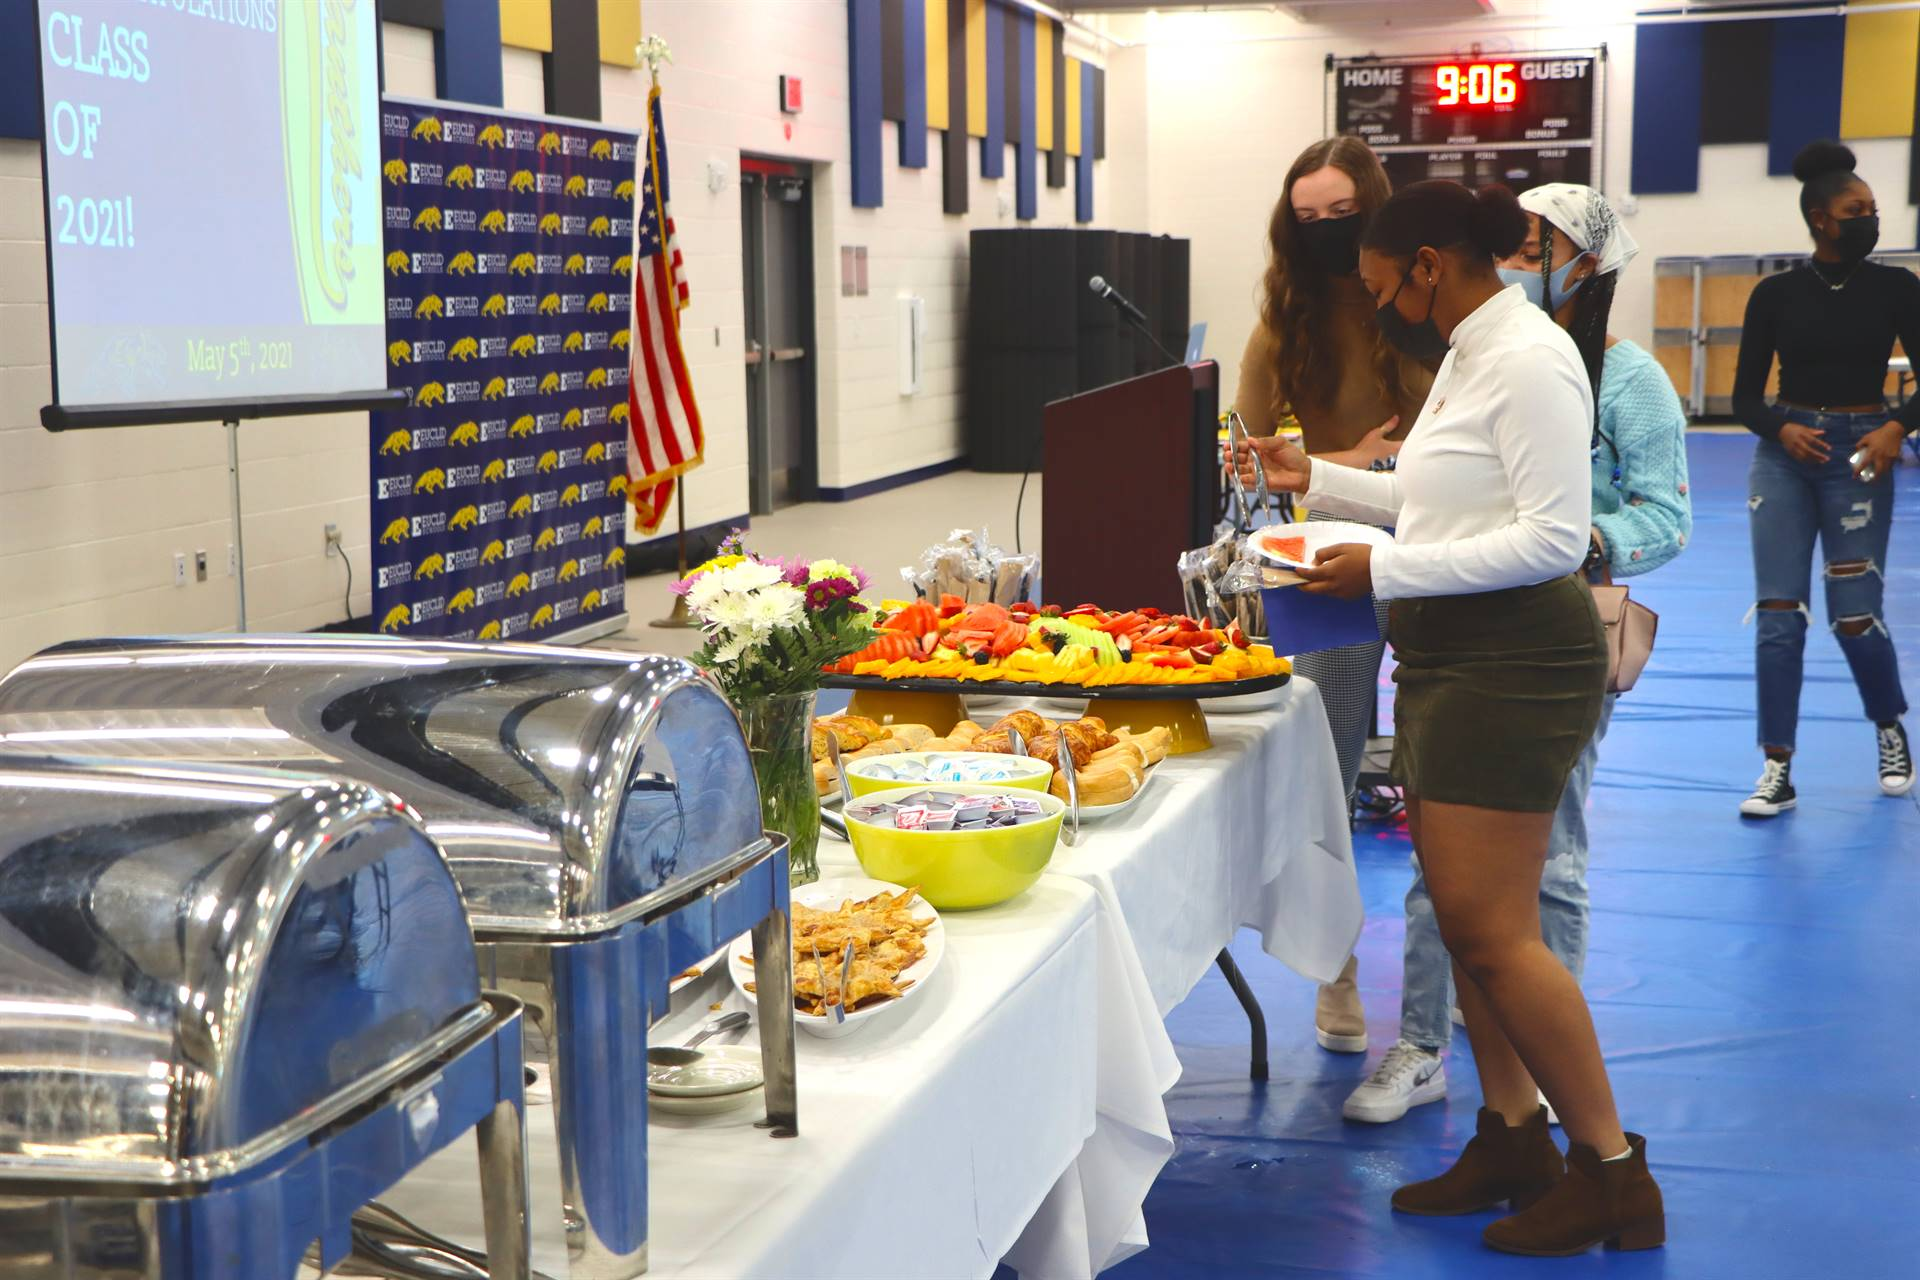 students getting food